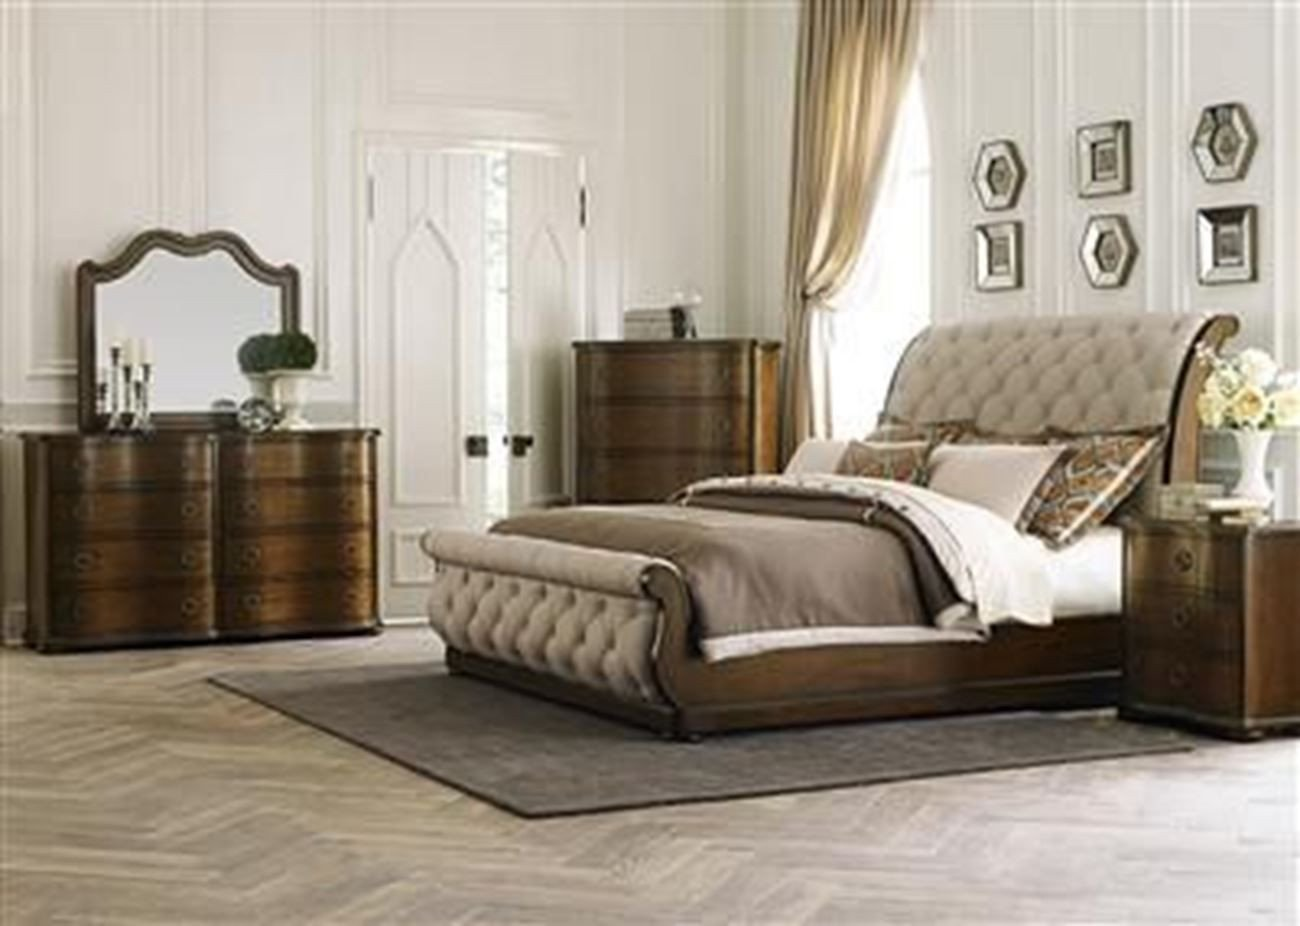 3 Pice Bedroom Set Unique Shop the Cotswold 3 Piece King Upholstered Bedroom